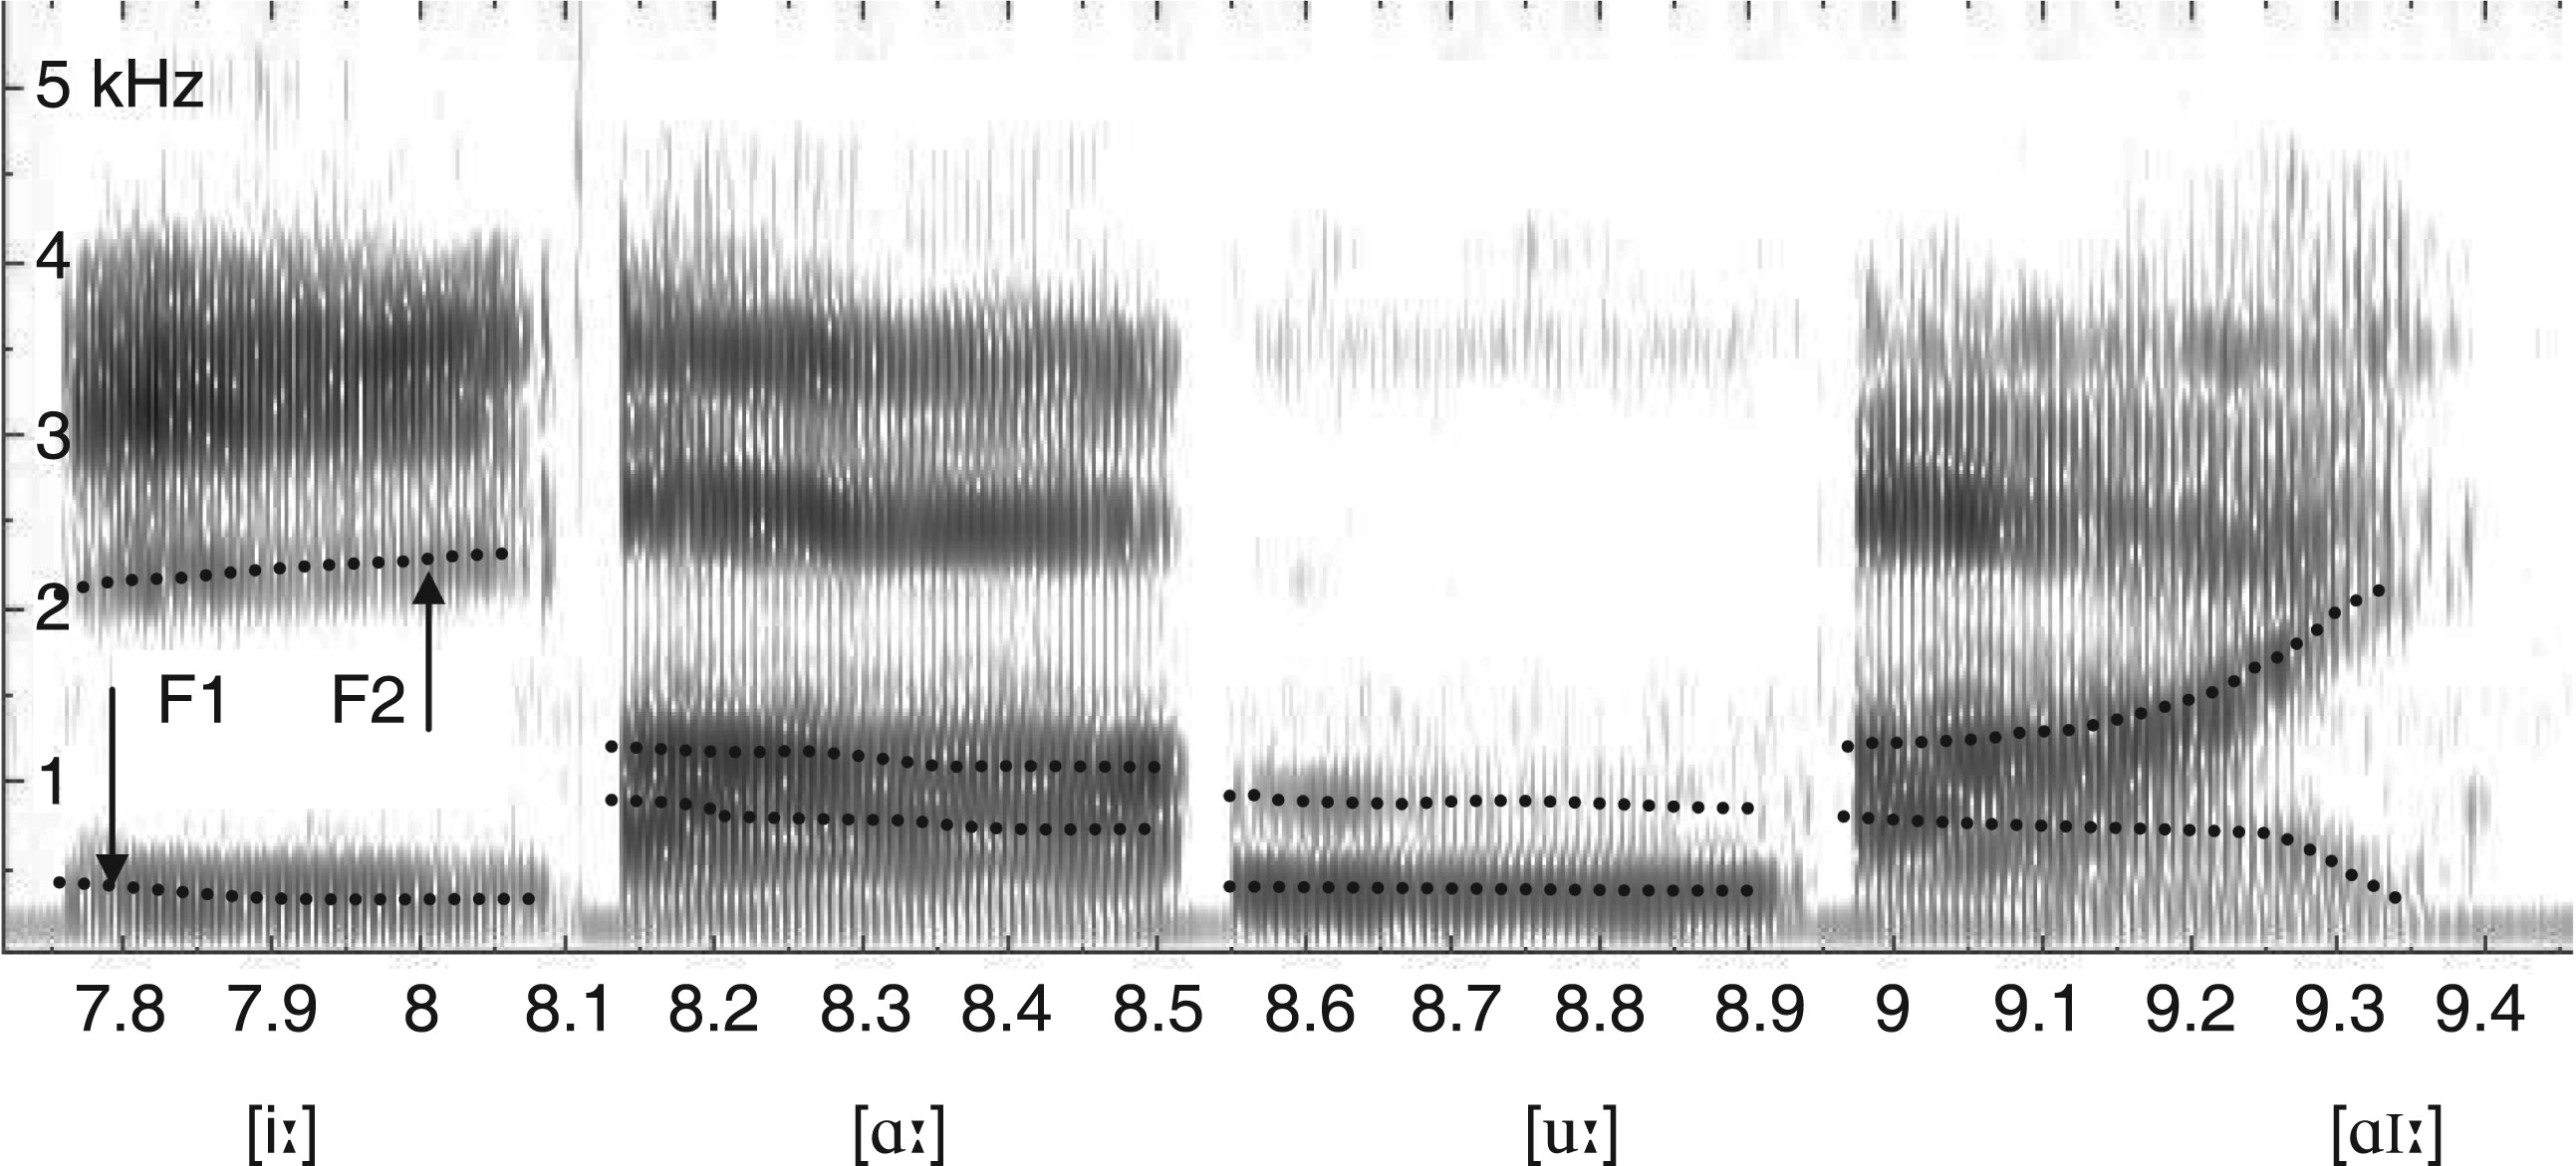 Routledge handbooks online spectrograms of the english fleece bath goose and price vowels produced between glottal biocorpaavc